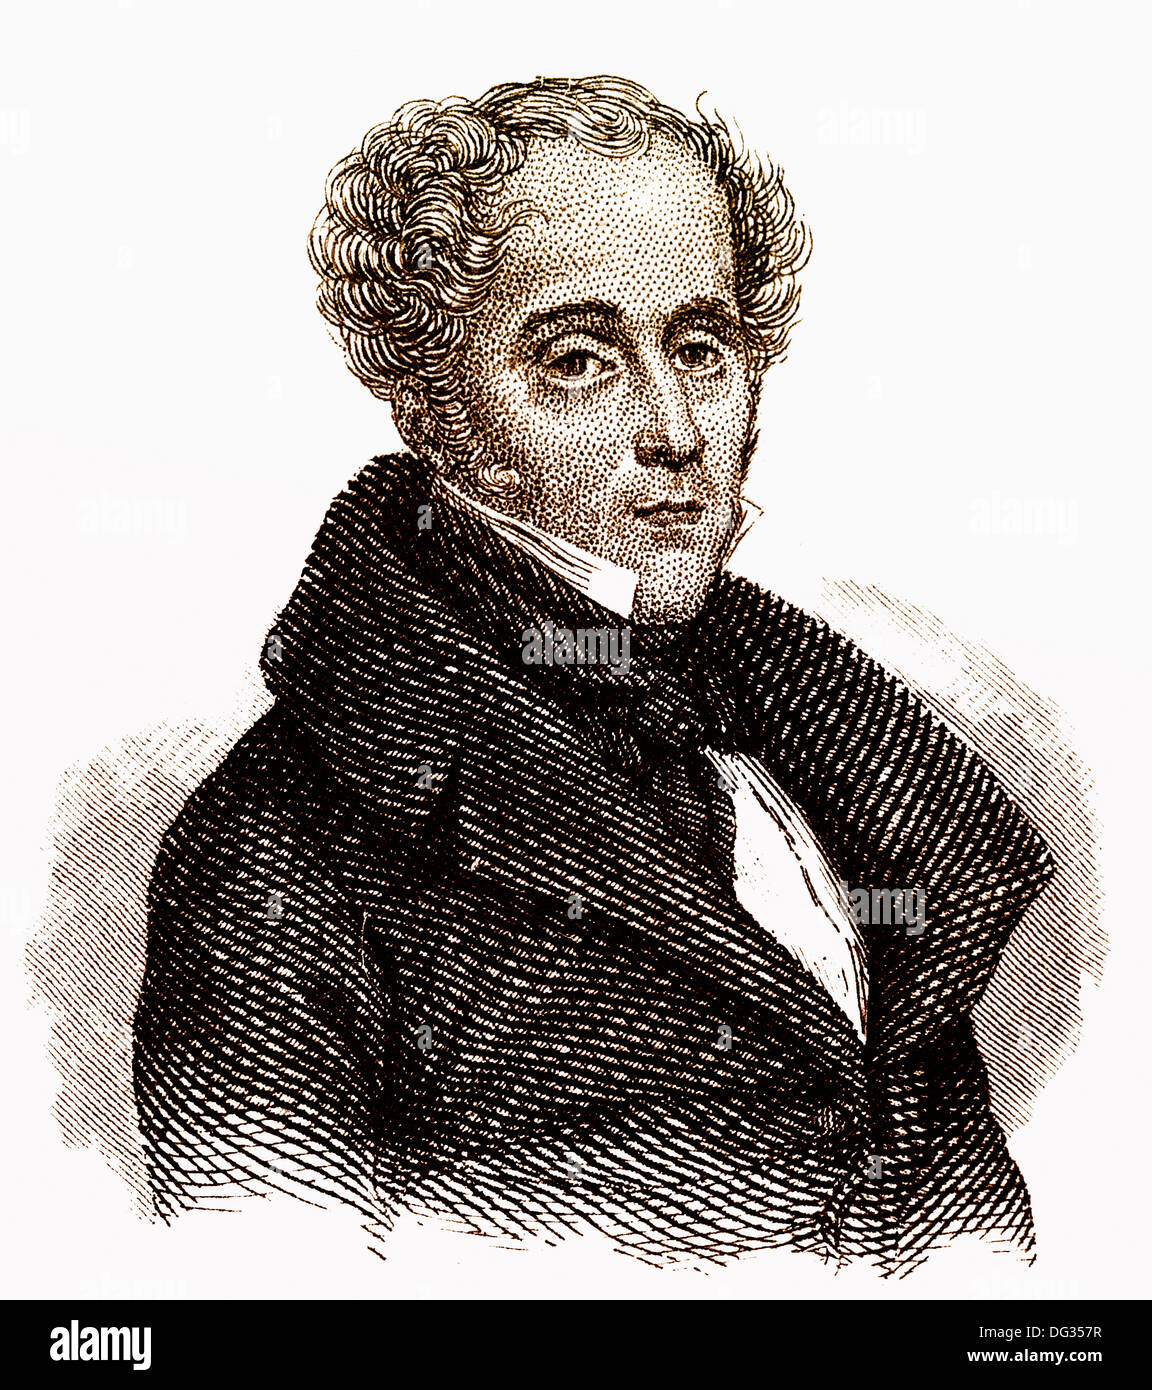 François-René, Vicomte de Chateaubriand, 1768 - 1848, a French writer, politician and diplomat - Stock Image